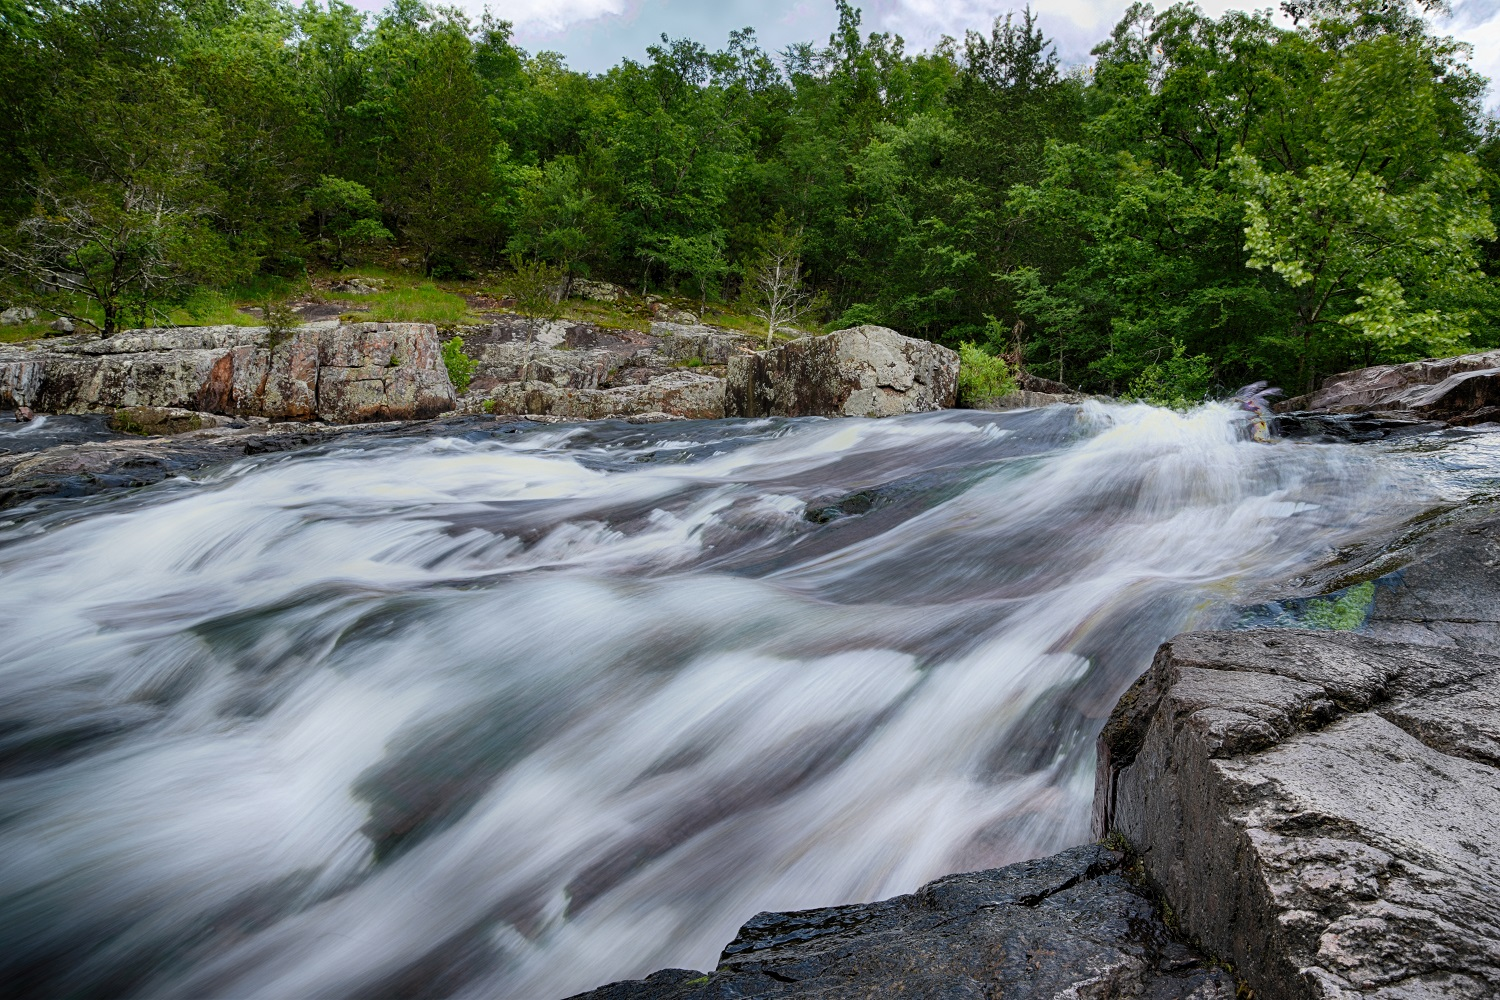 Another image of Rocky Falls near Eminence Missouri